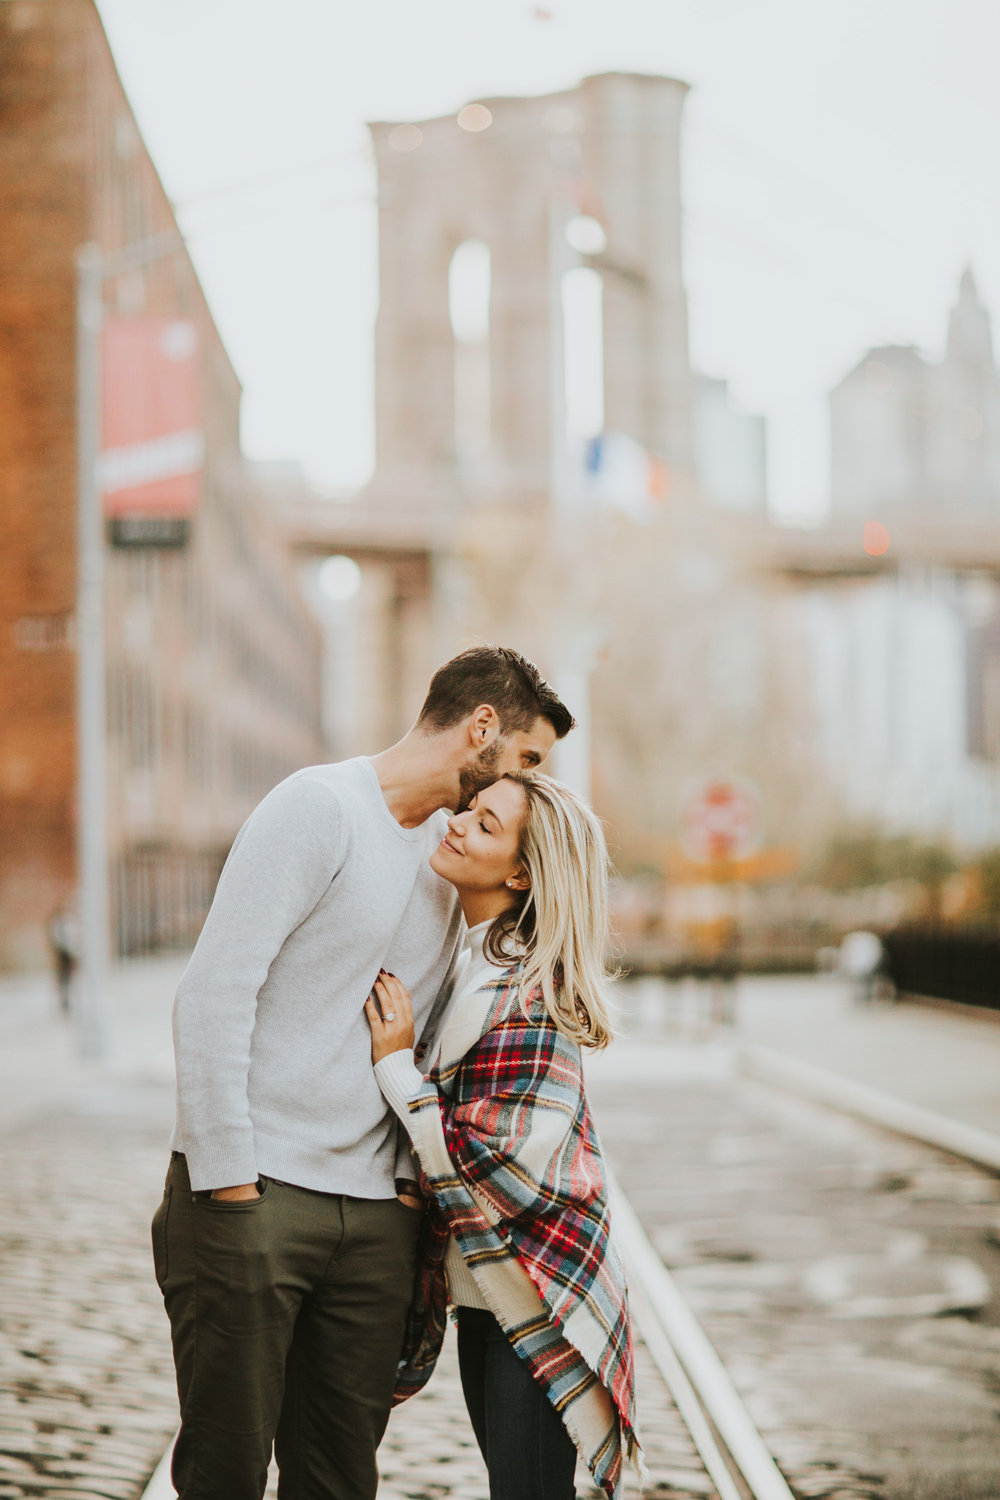 Colorful Fall NYC Engagement Session_Polly C Photography 1721155732.jpg